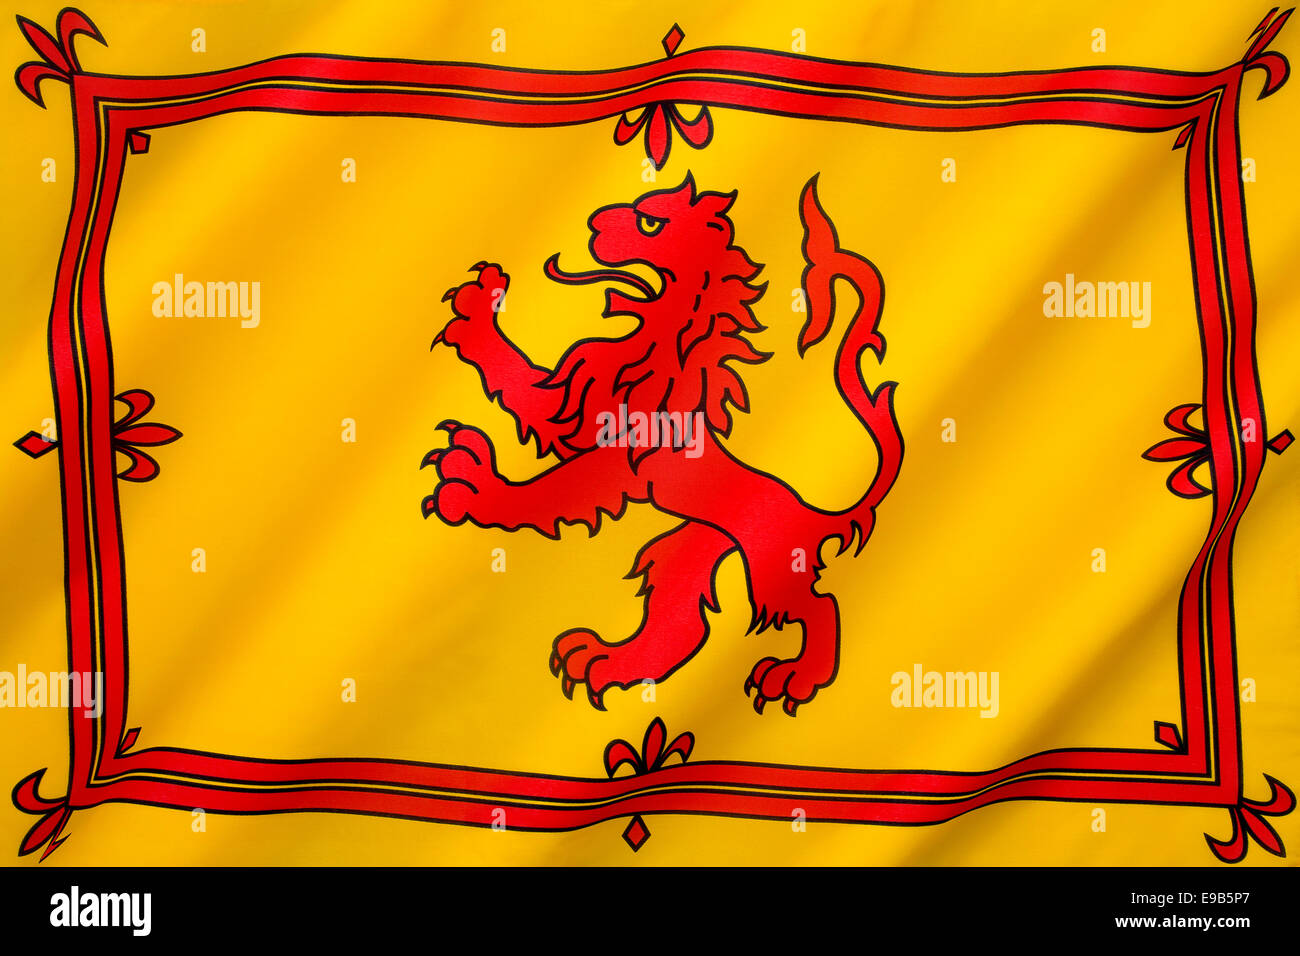 the royal banner of the royal arms of scotland or more commonly